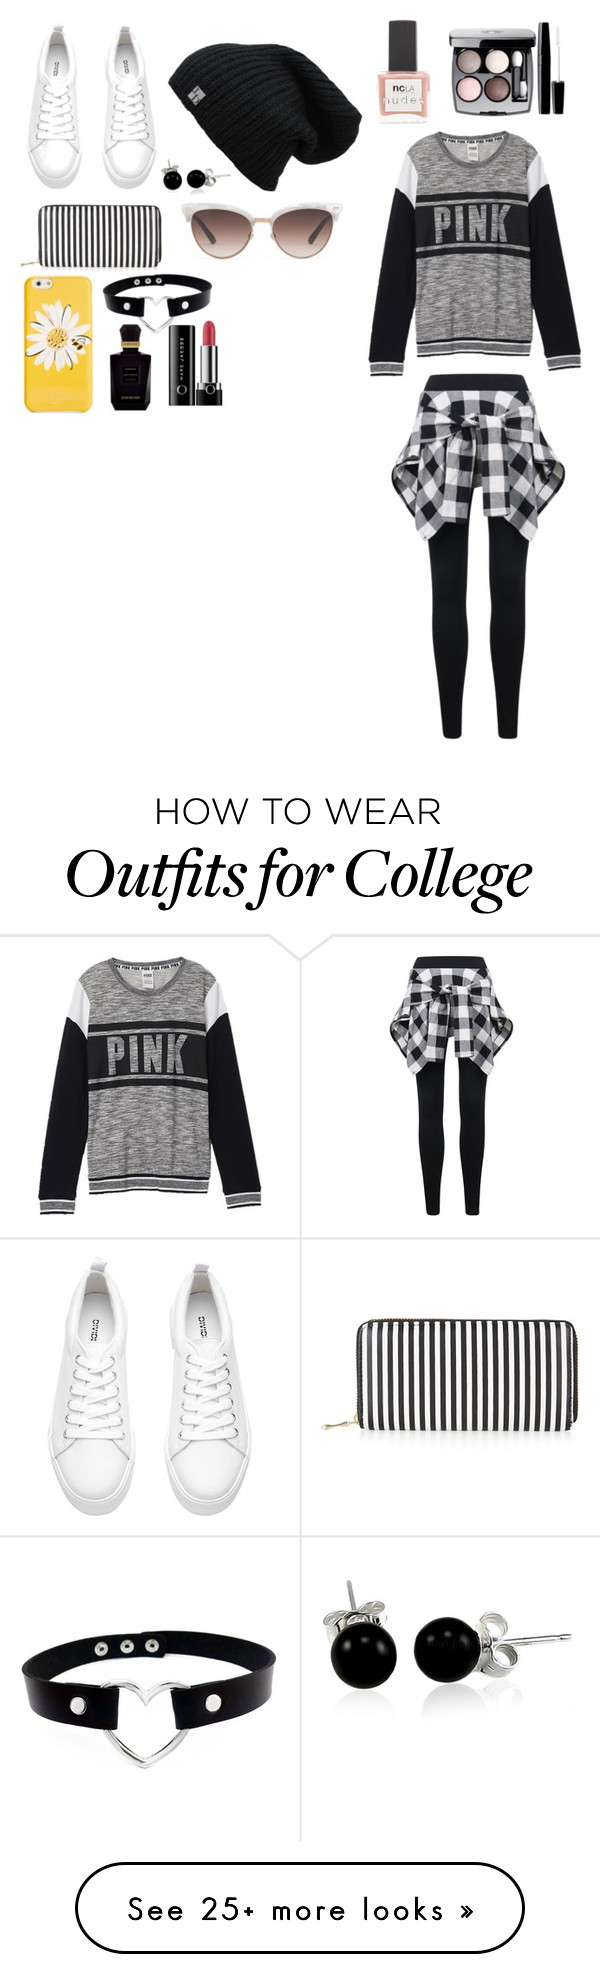 """Pink"" by rachelunderscorelovesfashion on Polyvore featuring Victoria's Secret, New Look, Gucci, Kate Spade, Bling Jewelry, ncLA, Chanel, Keiko Mecheri and Marc Jacobs"